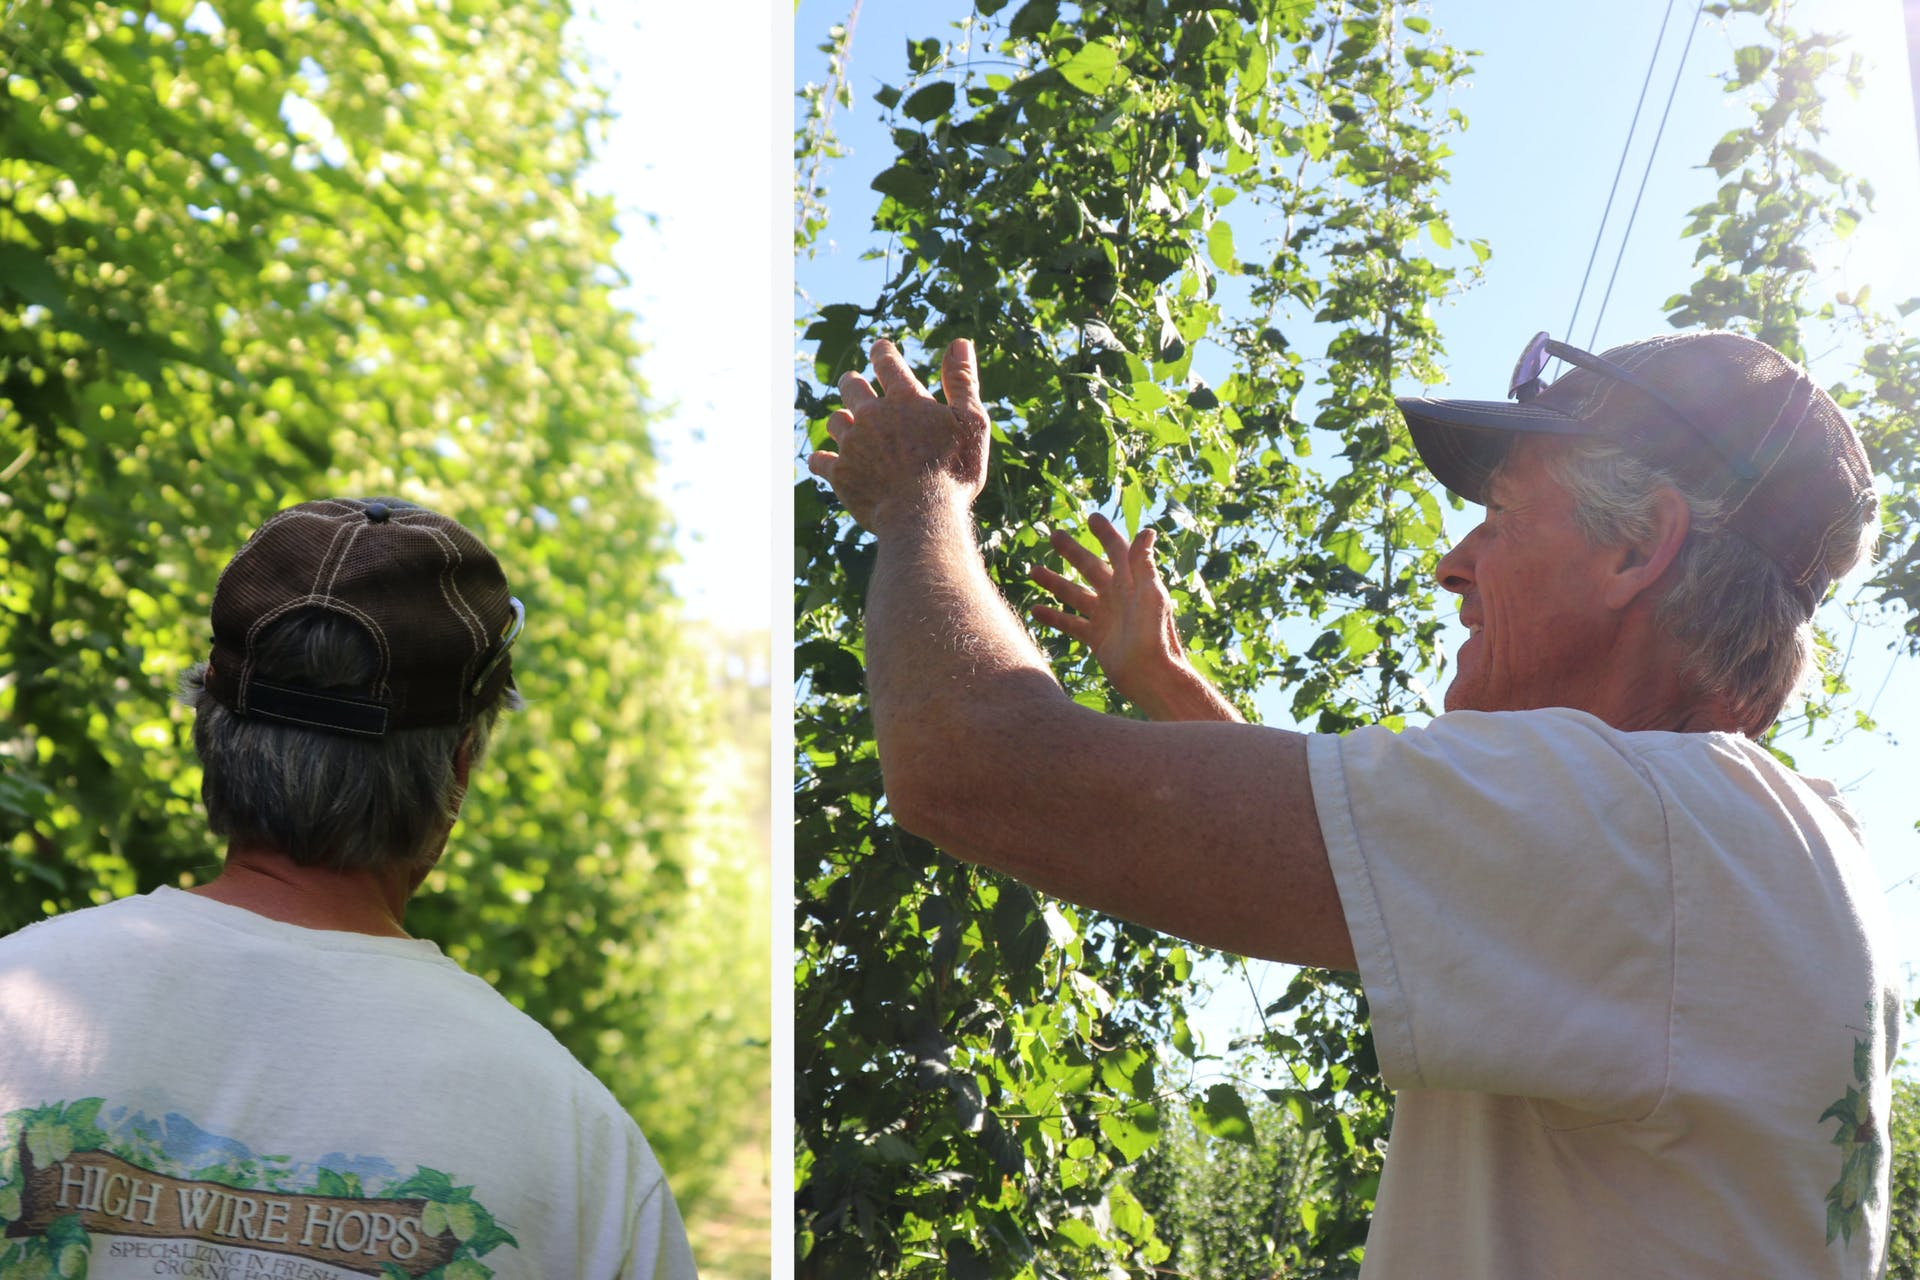 High Wire Hops_David